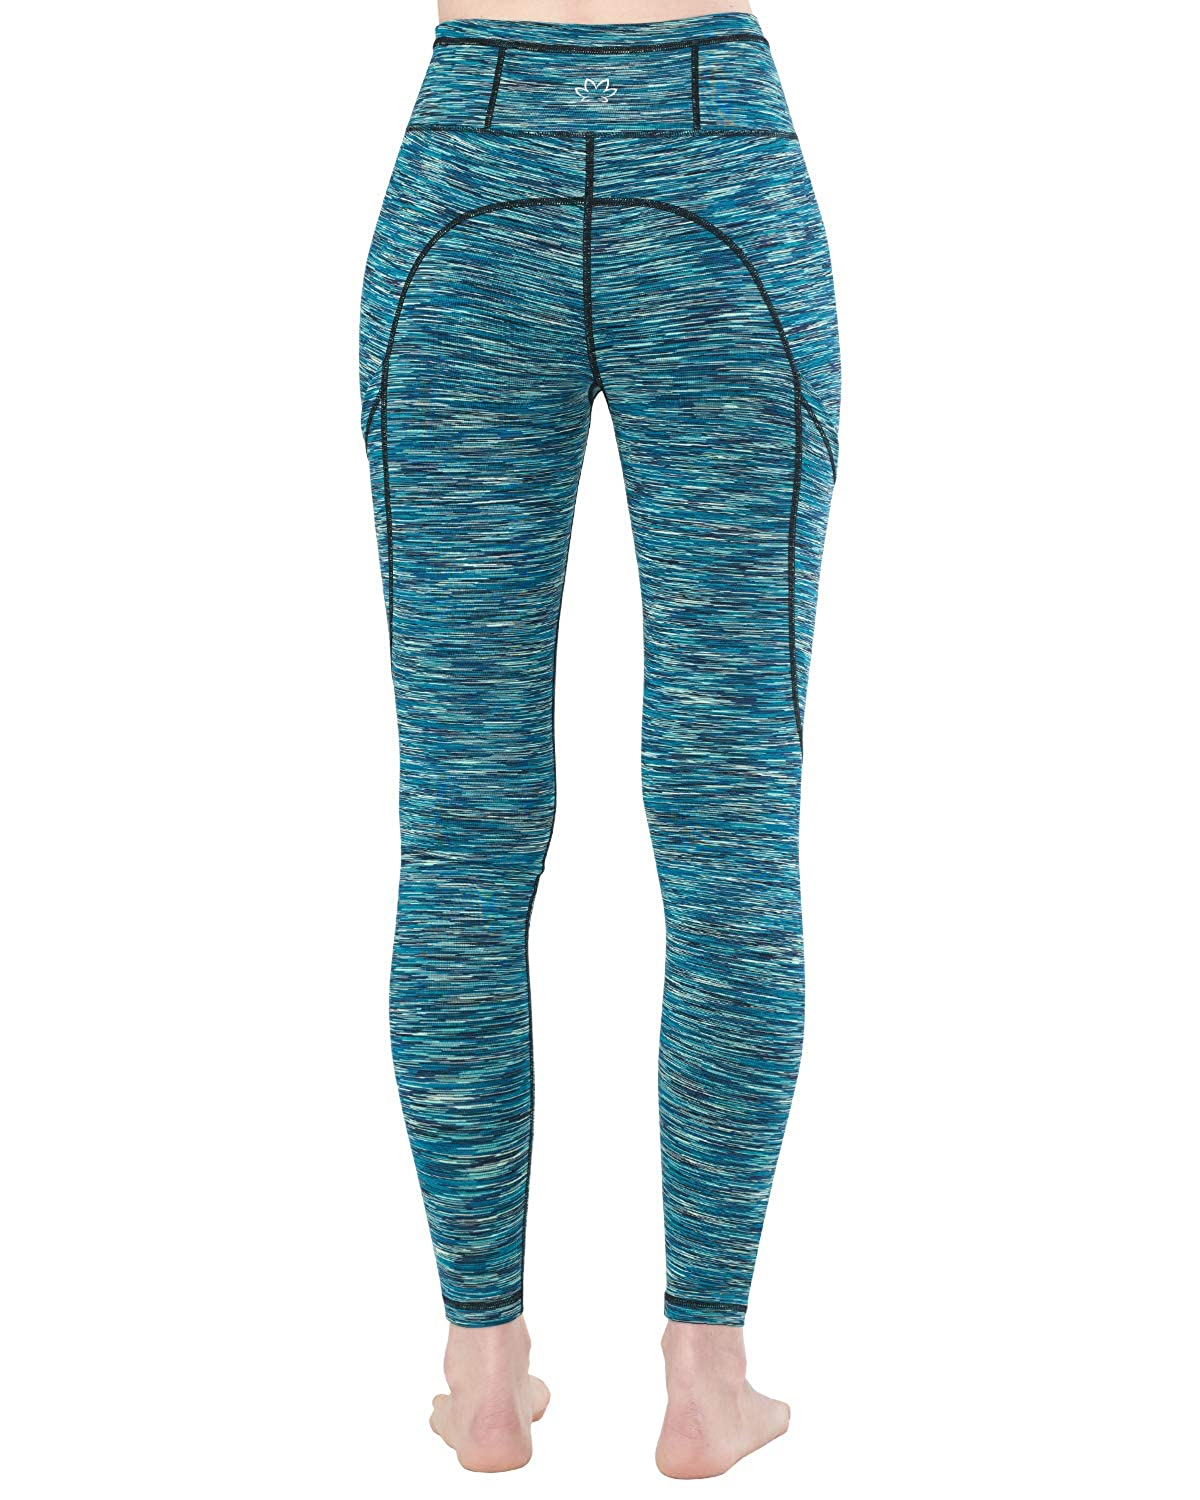 LaiEr Womens High Waist Yoga Legging with Both Side Pockets Running Leggings 4 Way Stretch Workout Pants